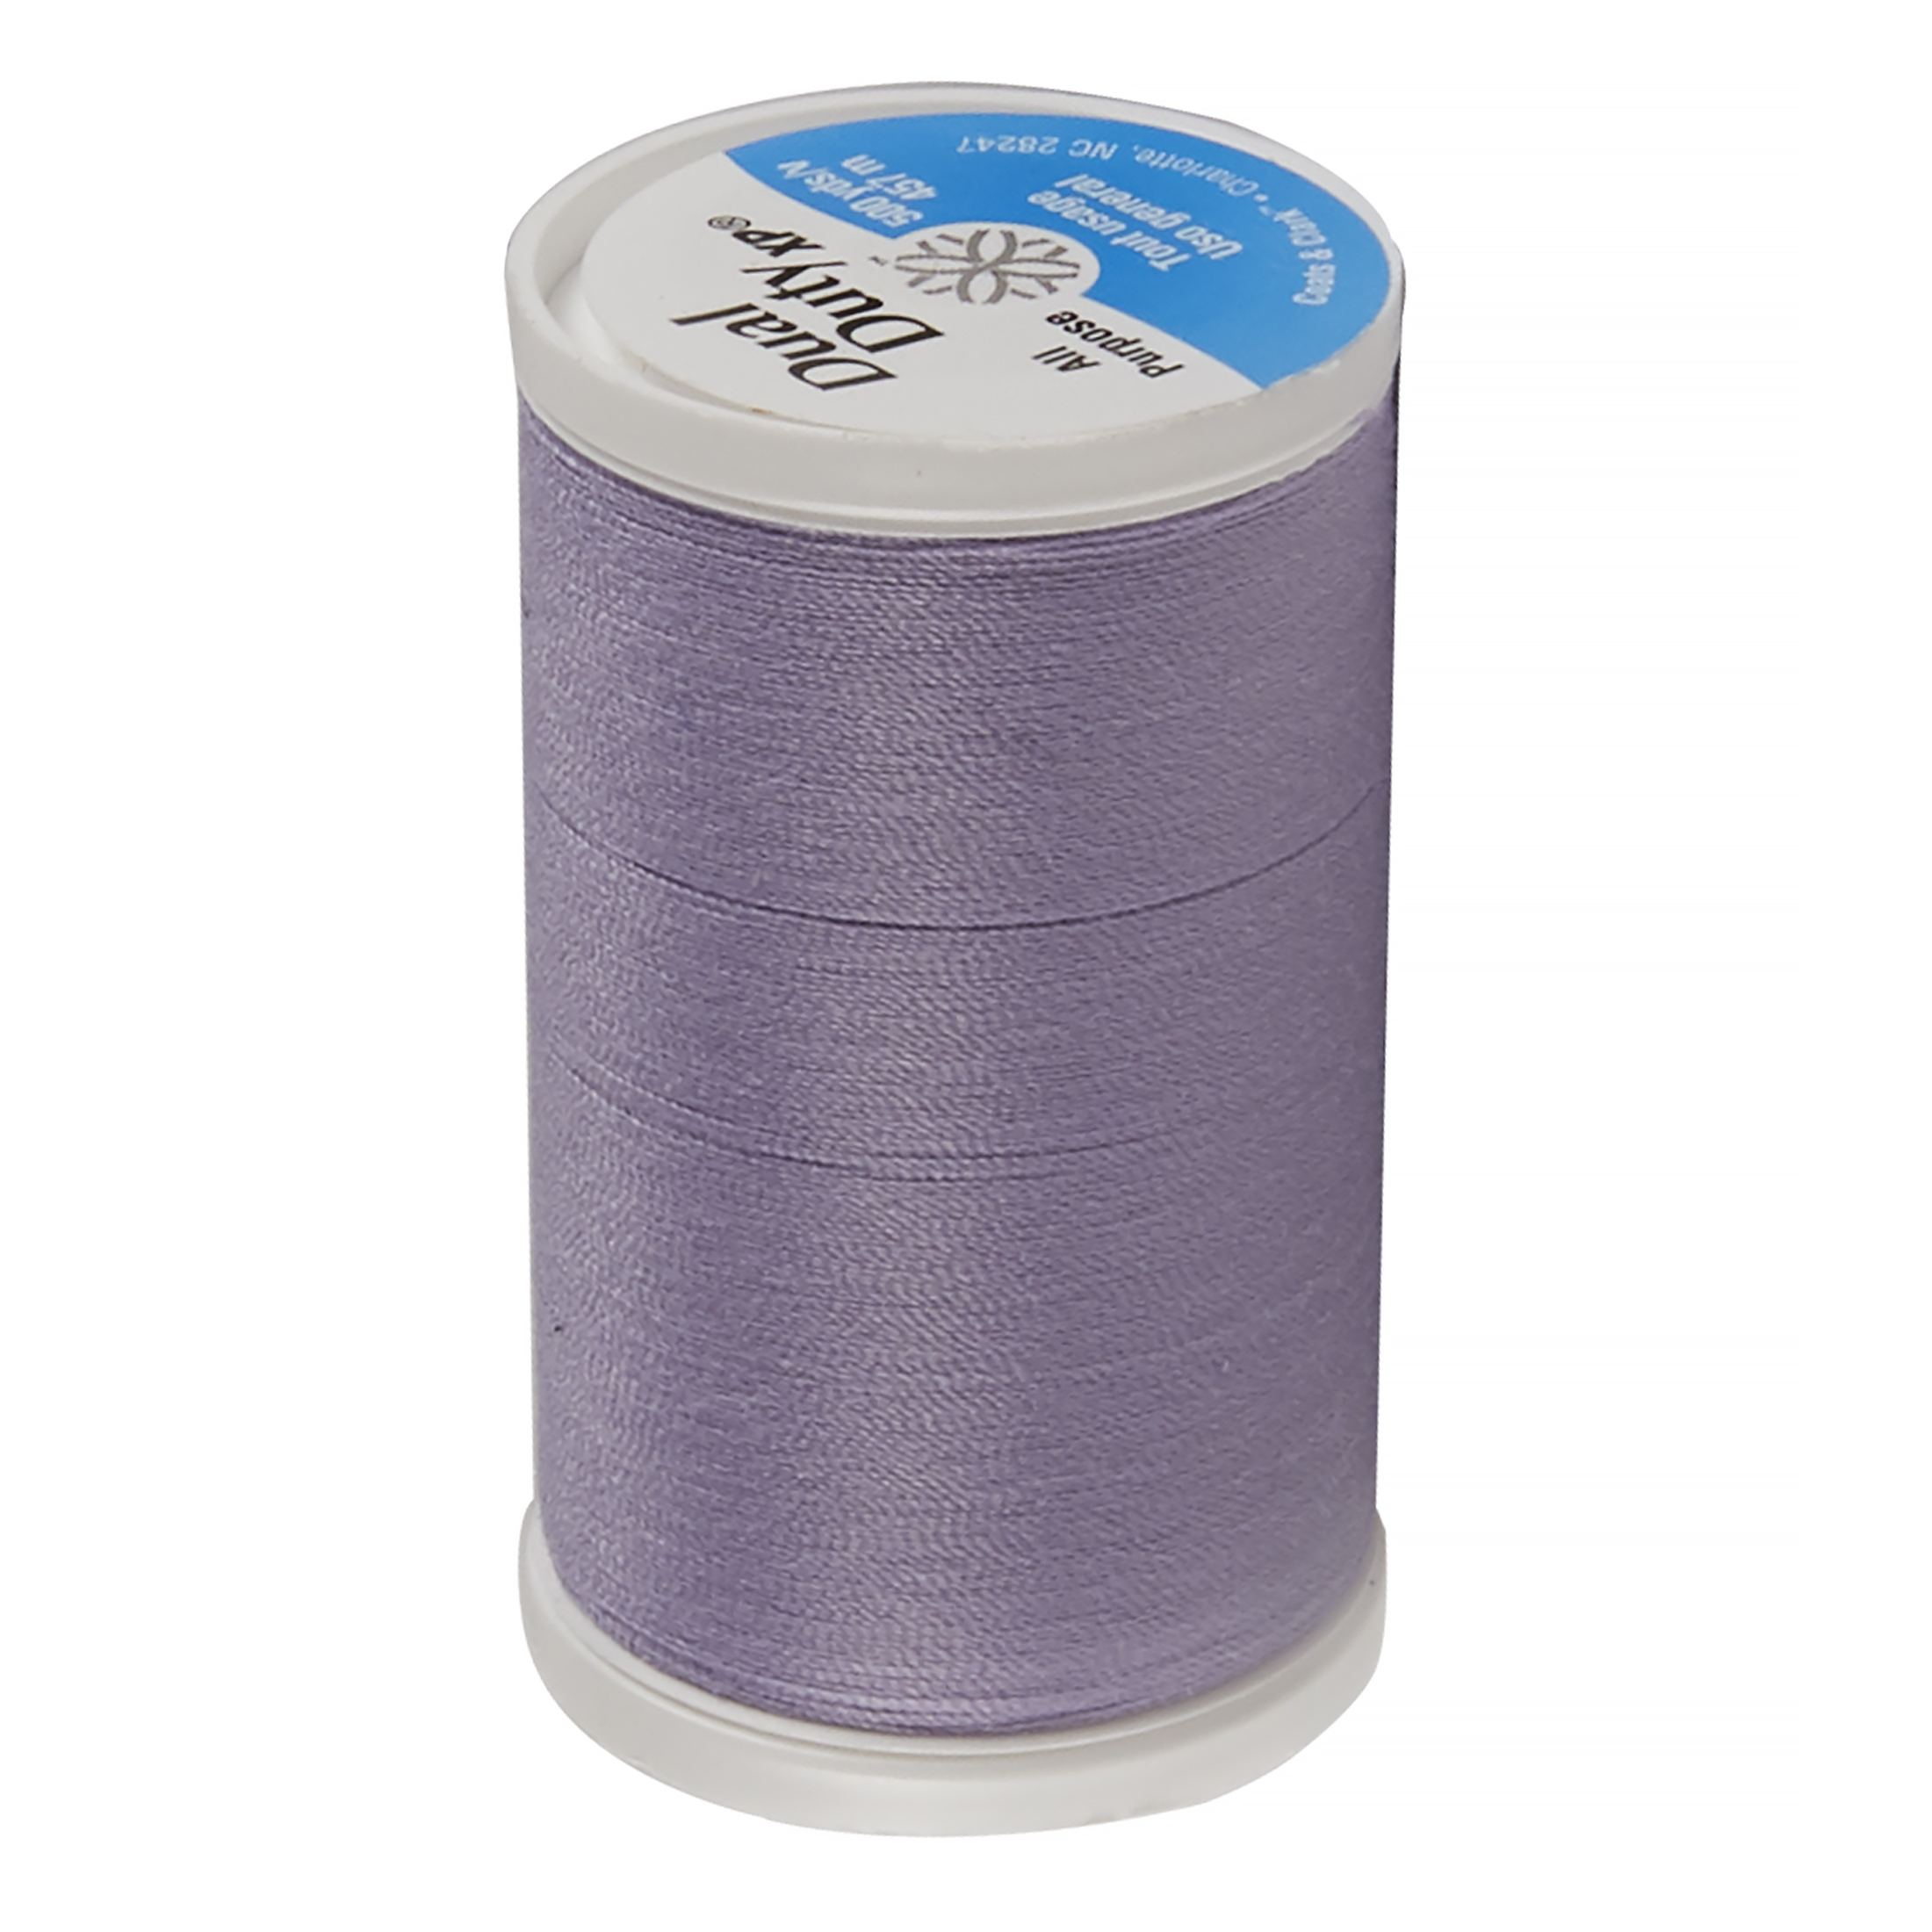 Dual Duty XP General Purpose Thread 500 YD Lilac